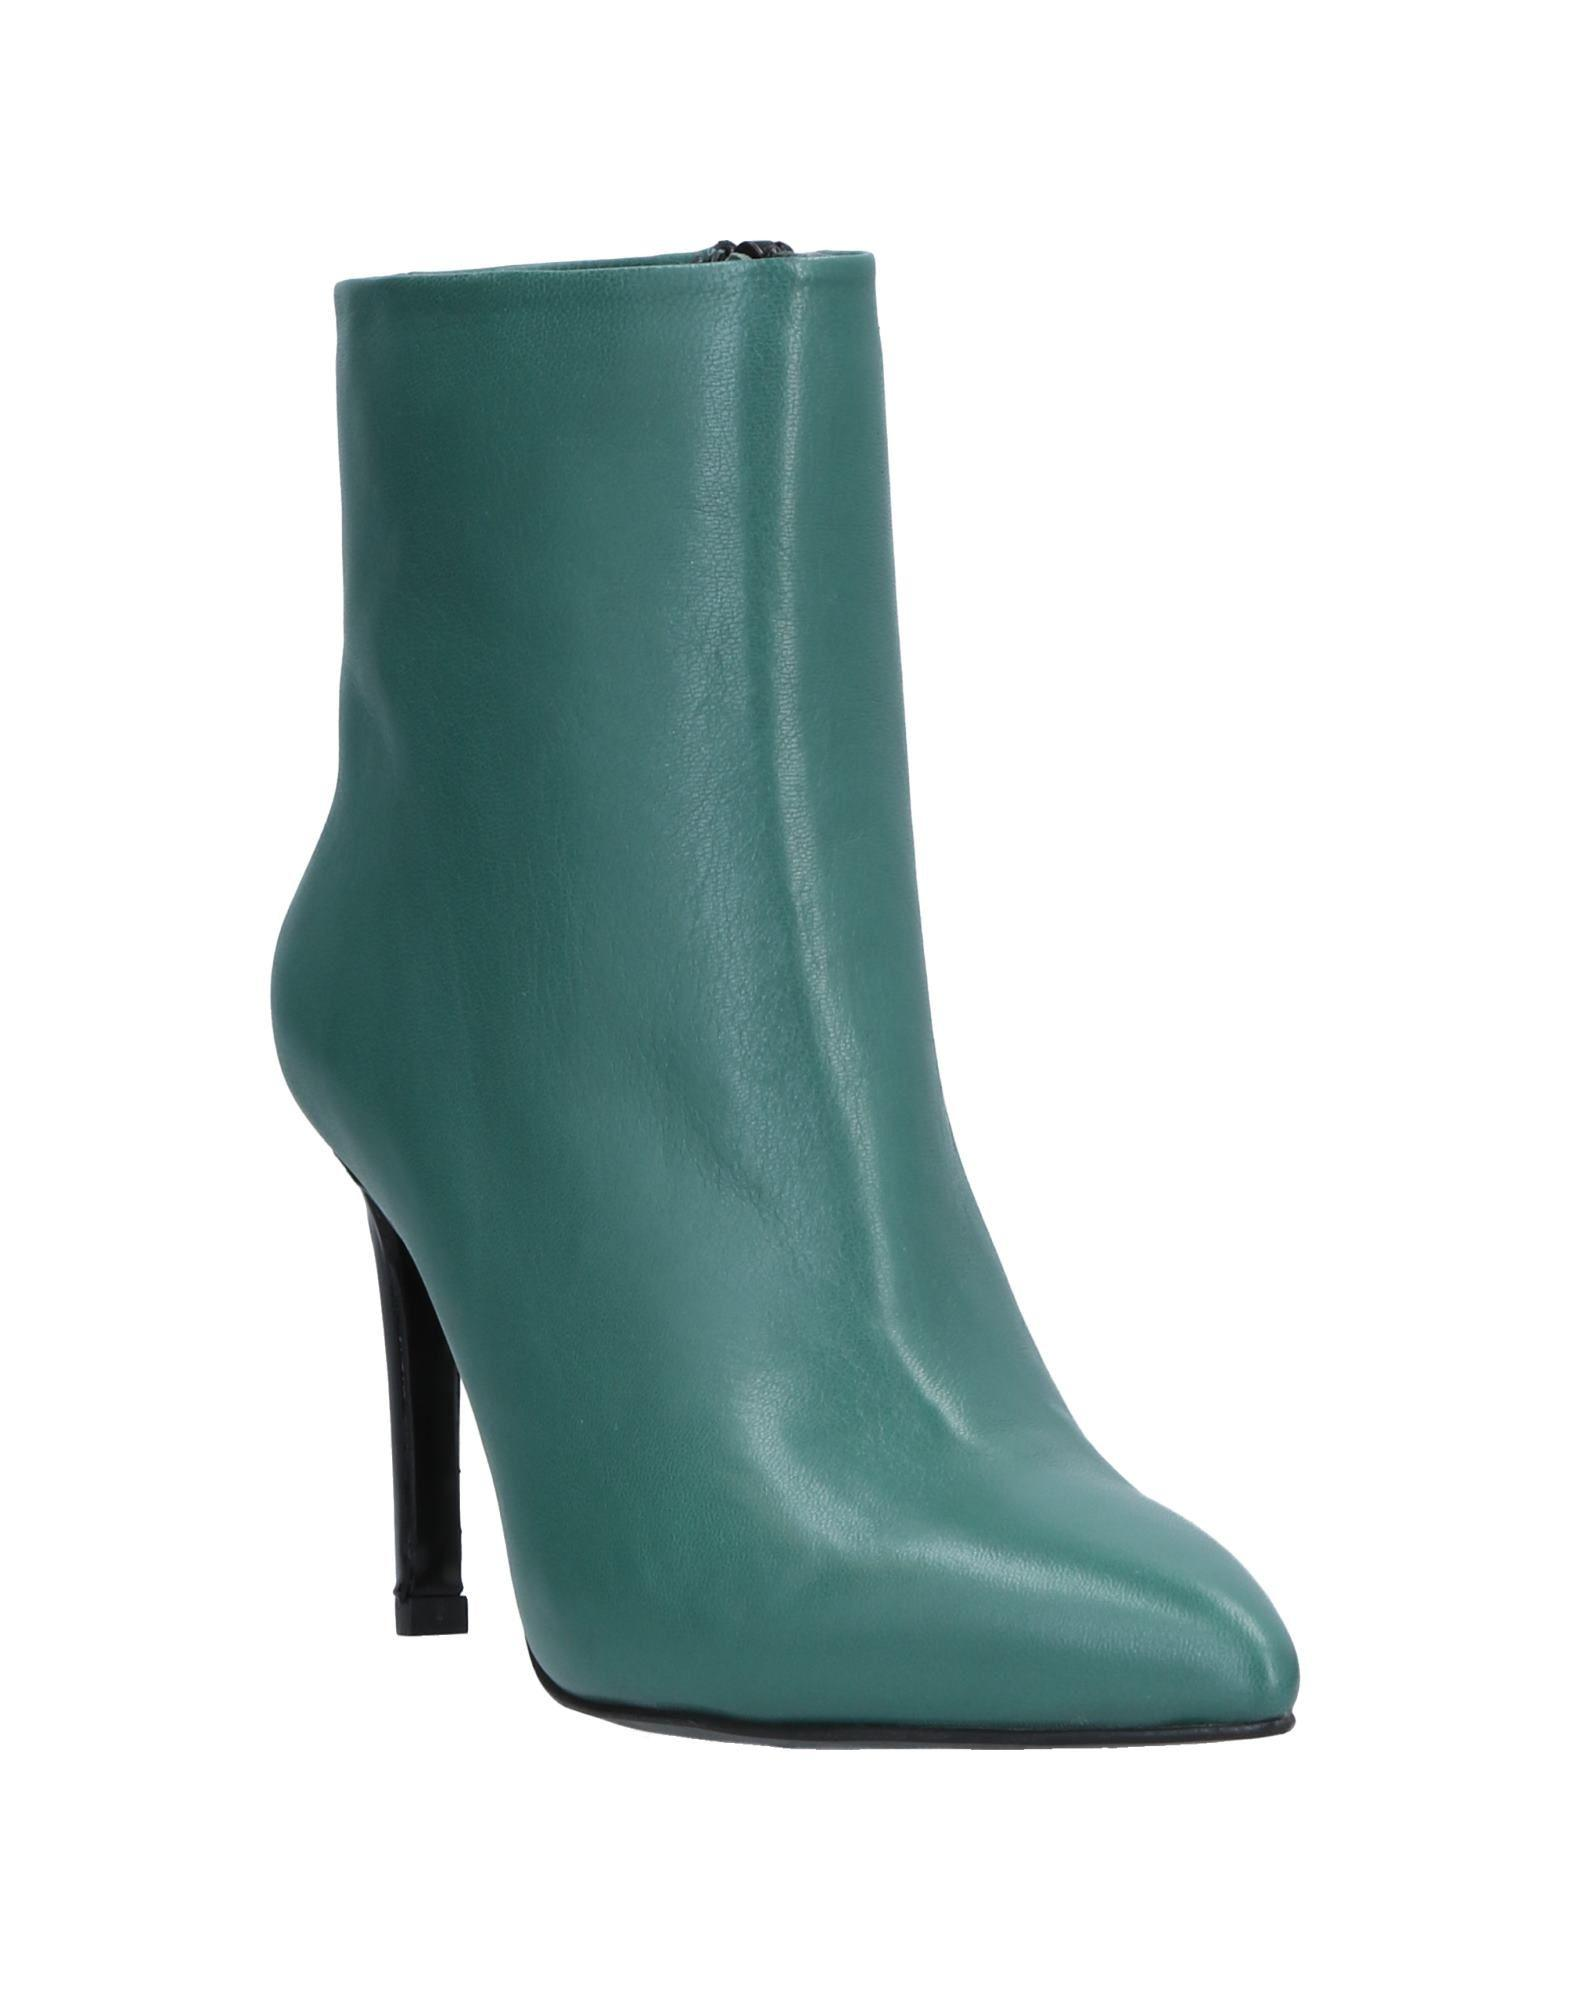 Gianni Marra Leather Ankle Boots in Green